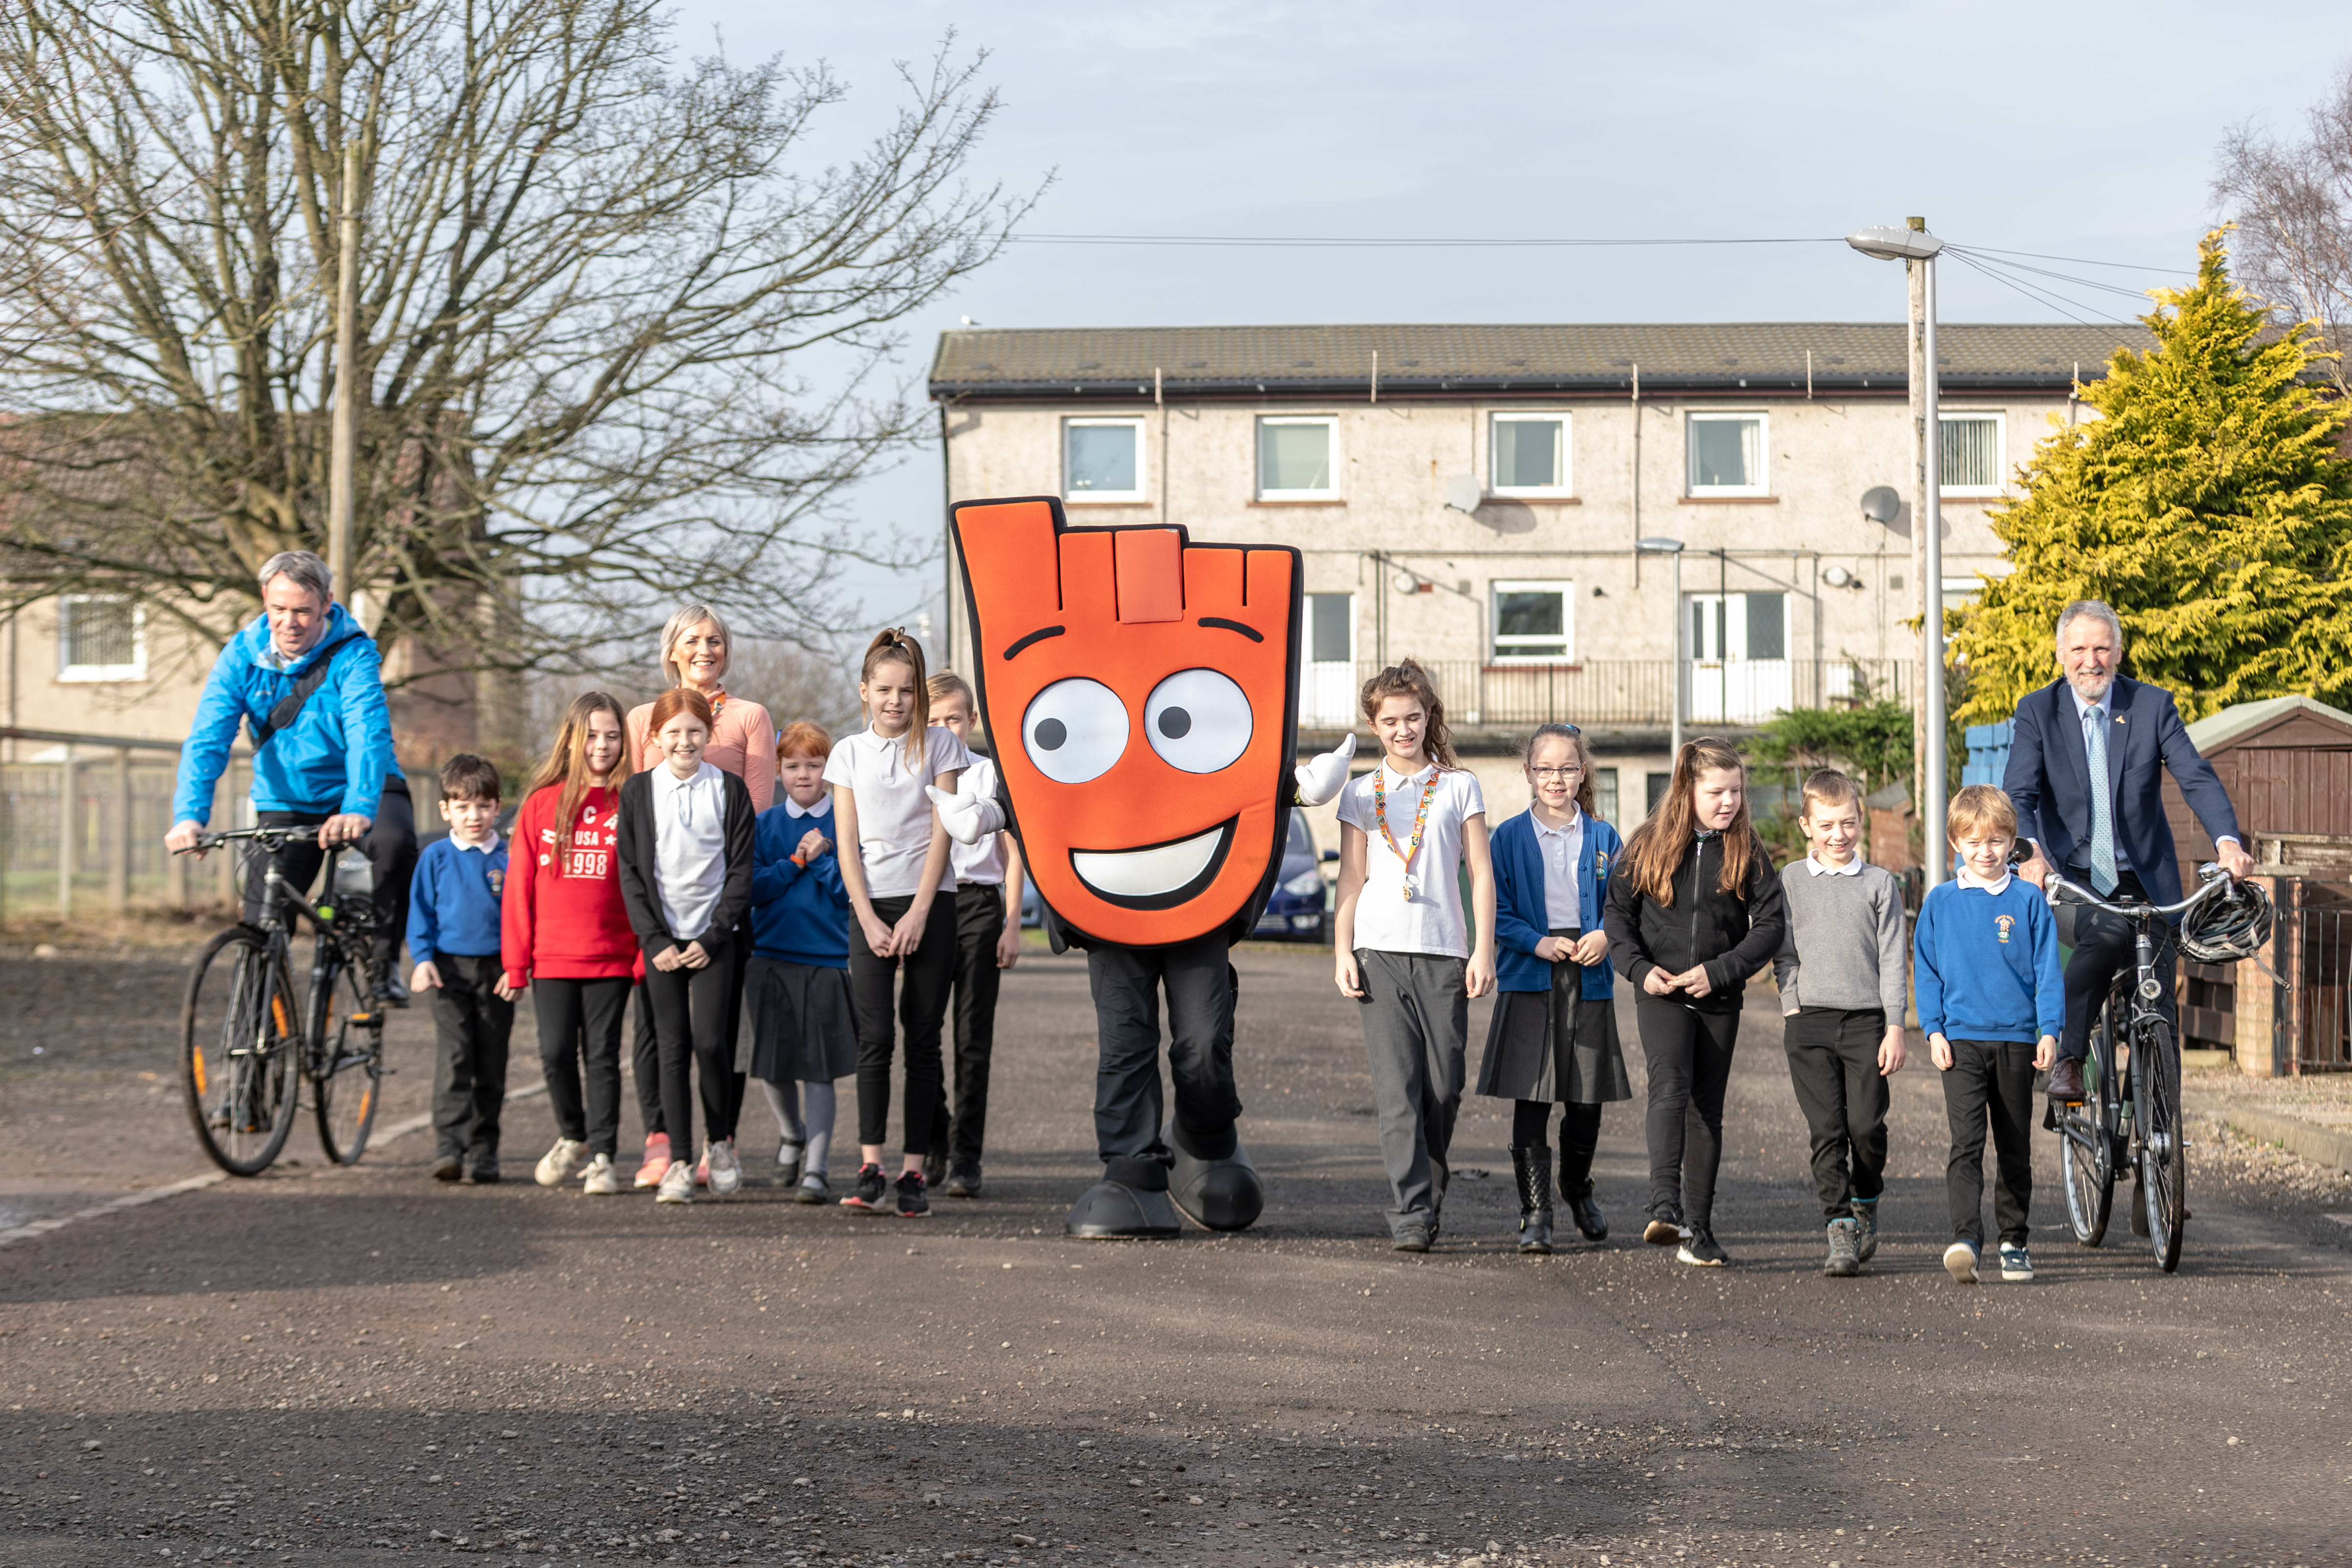 Letham Primary School pupils